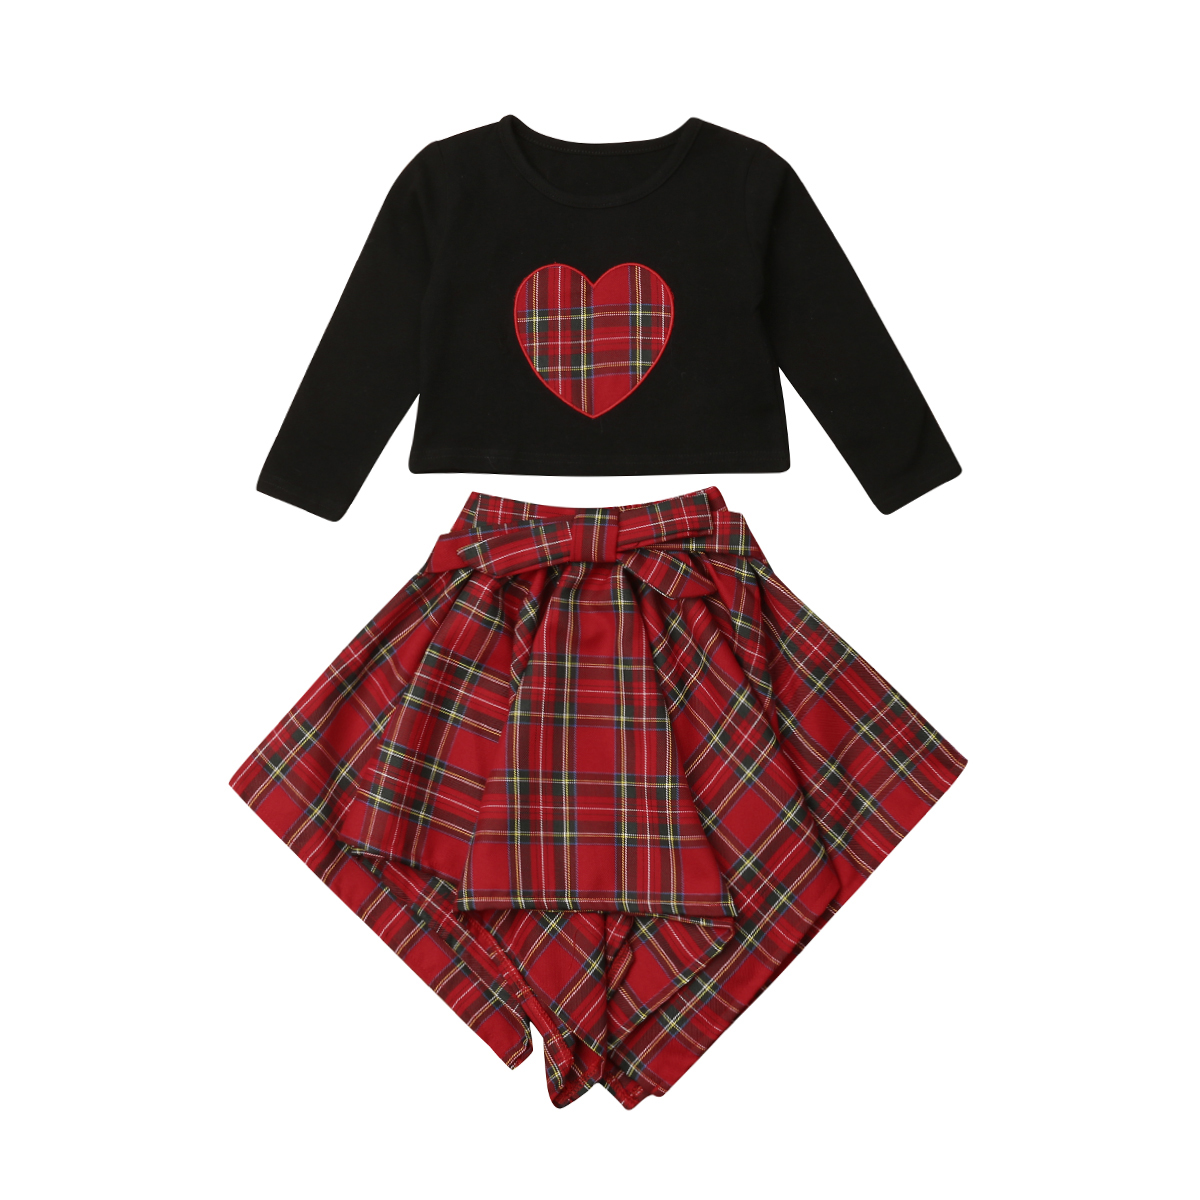 Girl Love Print Bow Belt Plaid Cute Cotton Skirts Casual Clothes Sets Kids Baby Girls Clothing T-shirt Tops Long Sleeve 1-6T plaid